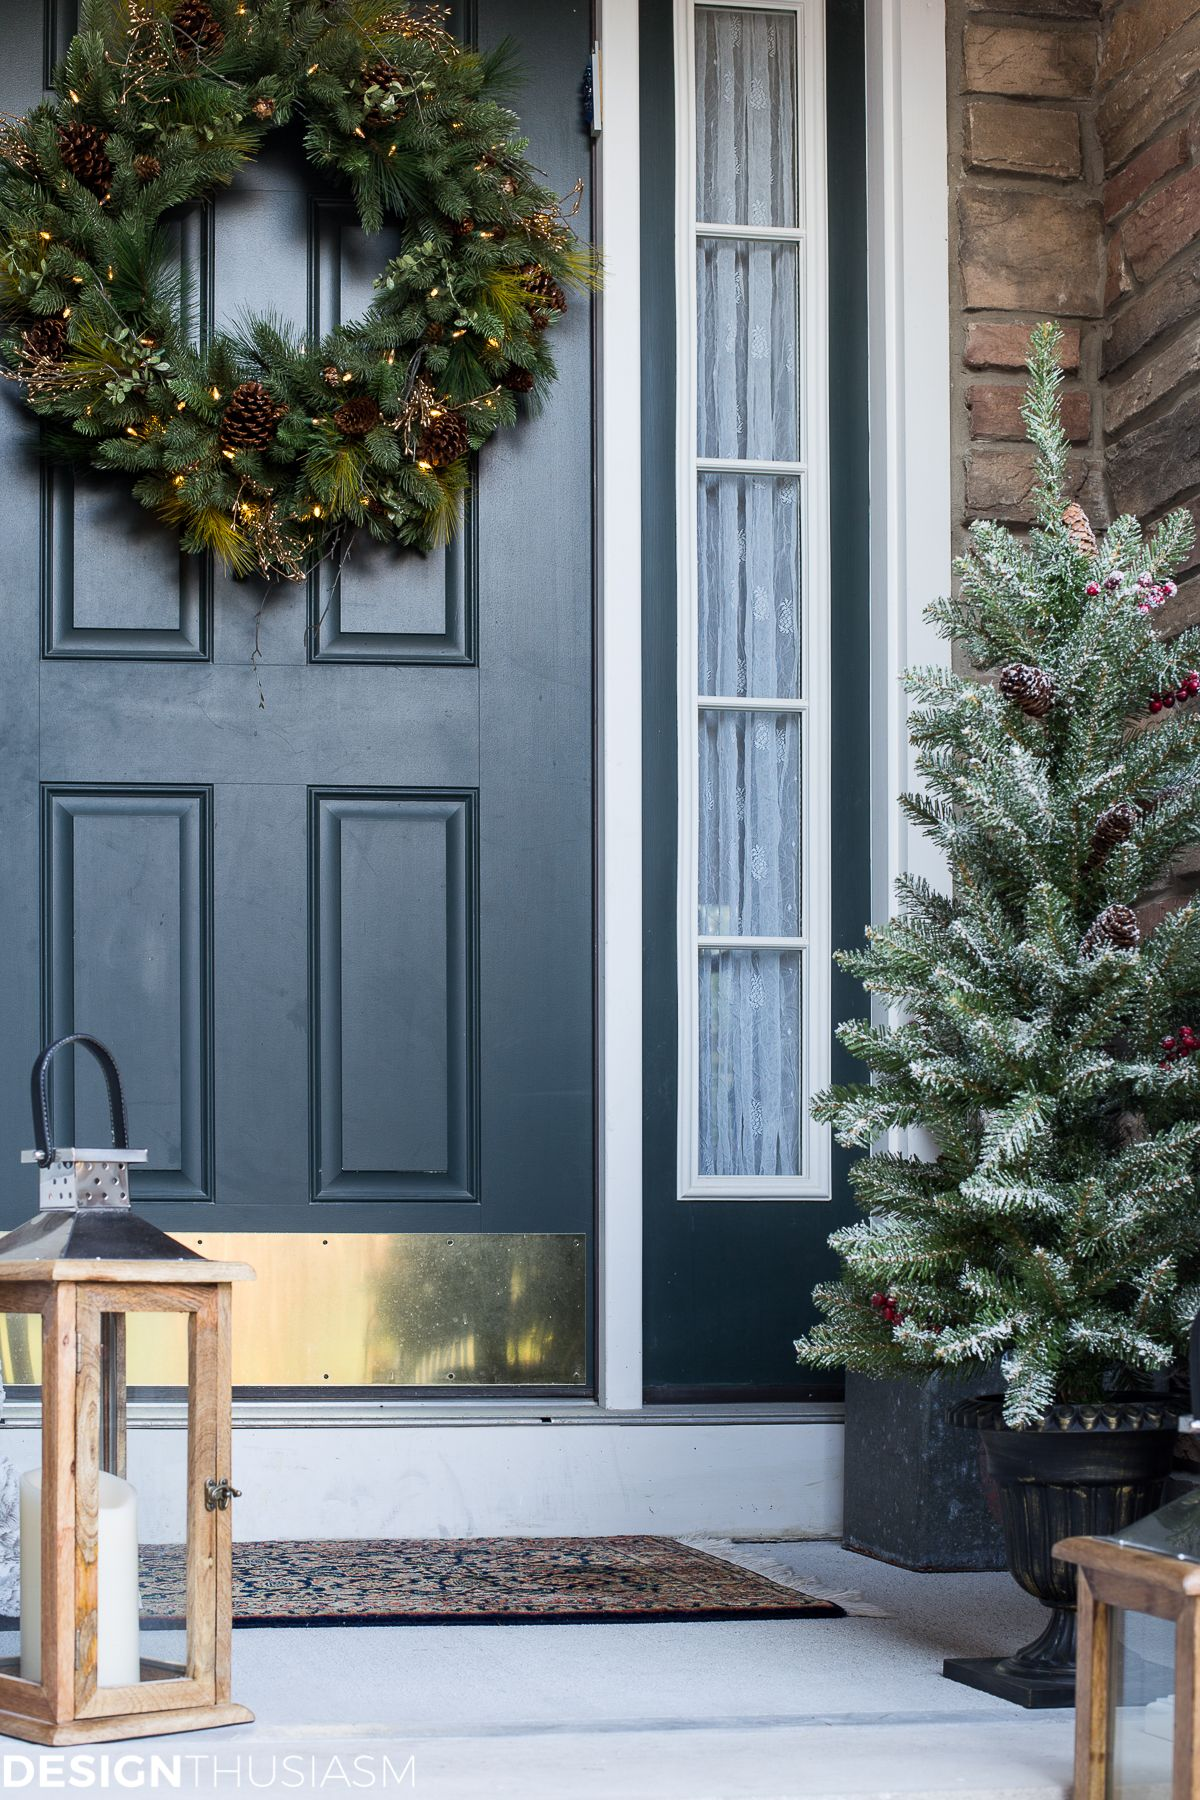 Easy Outdoor Christmas Decorating Ideas For A Tiny Front Porch Christmas Porch Decor Front Porch Christmas Decor Front Porch Decorating